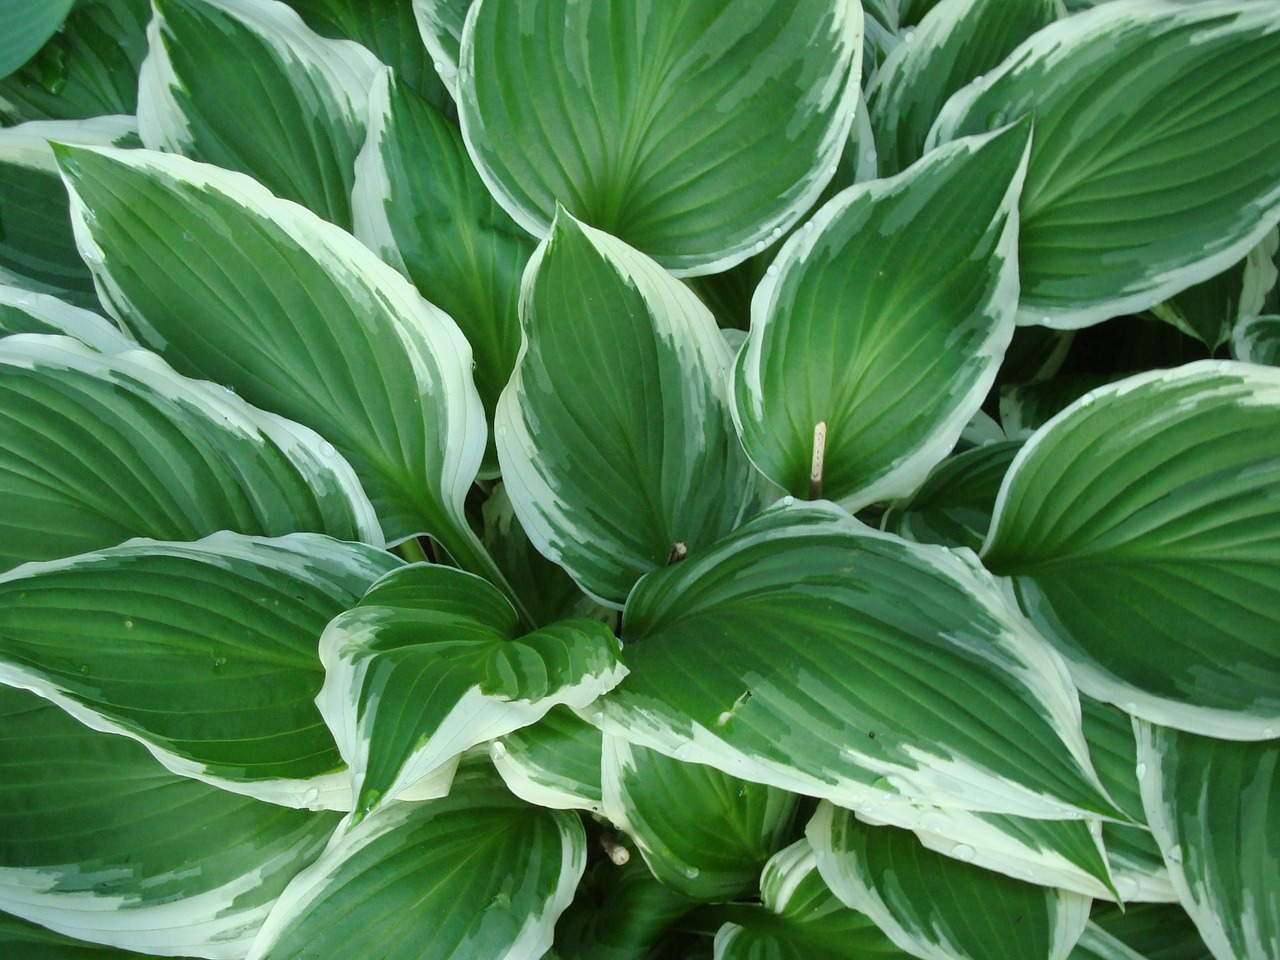 Hostashadeplantleavesvariegated Free Photo From Needpixcom